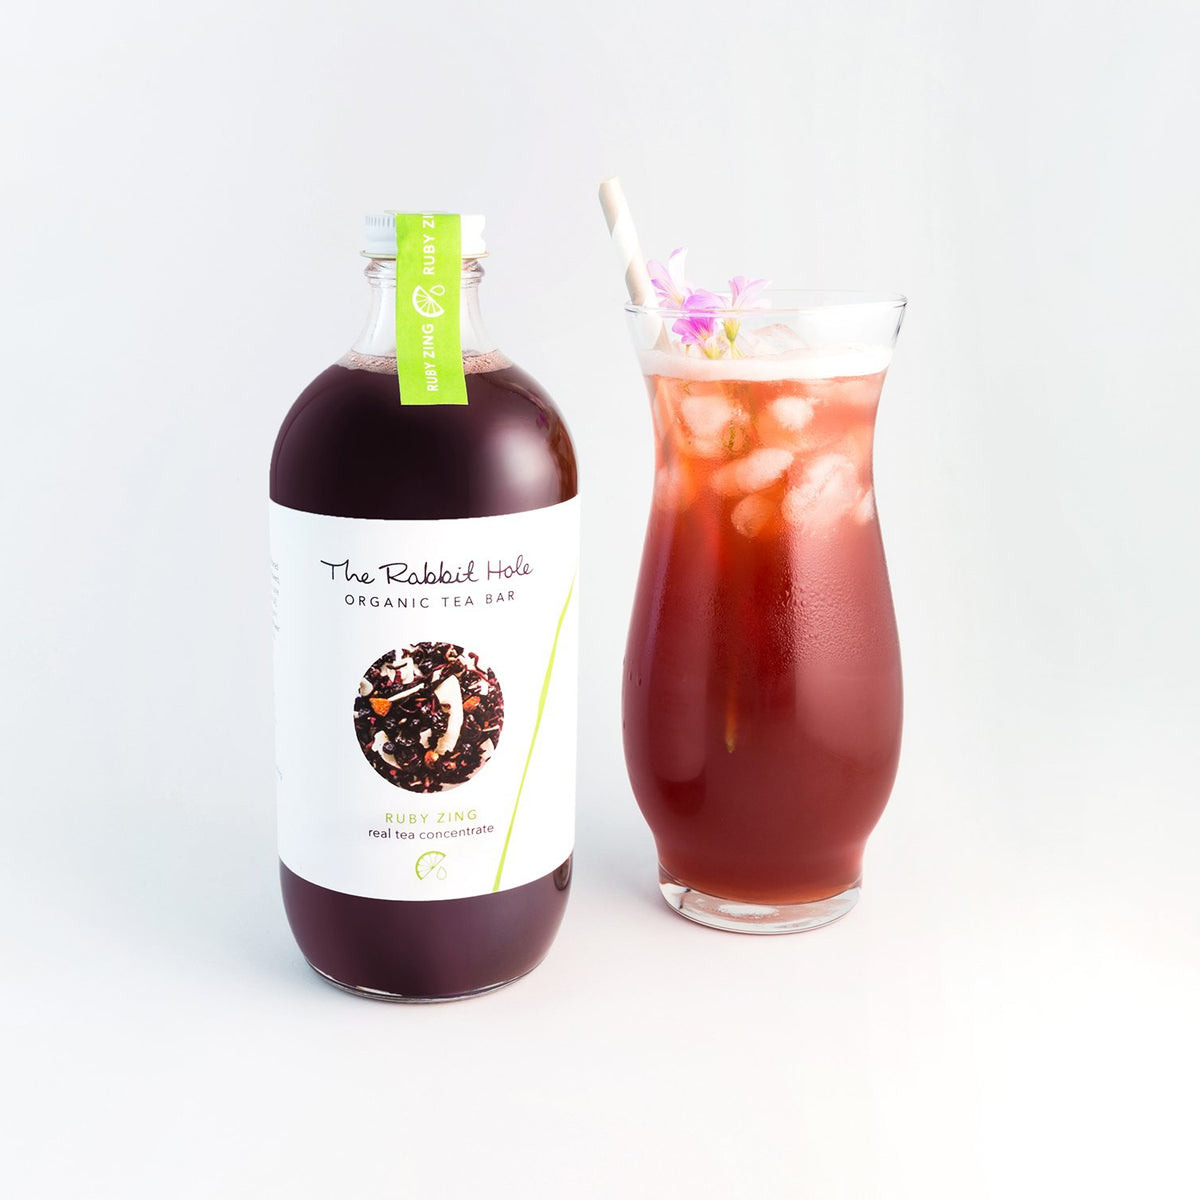 Ruby Zing real tea concentrate by The Rabbit Hole - iced tea mixer with tall glass of iced tea